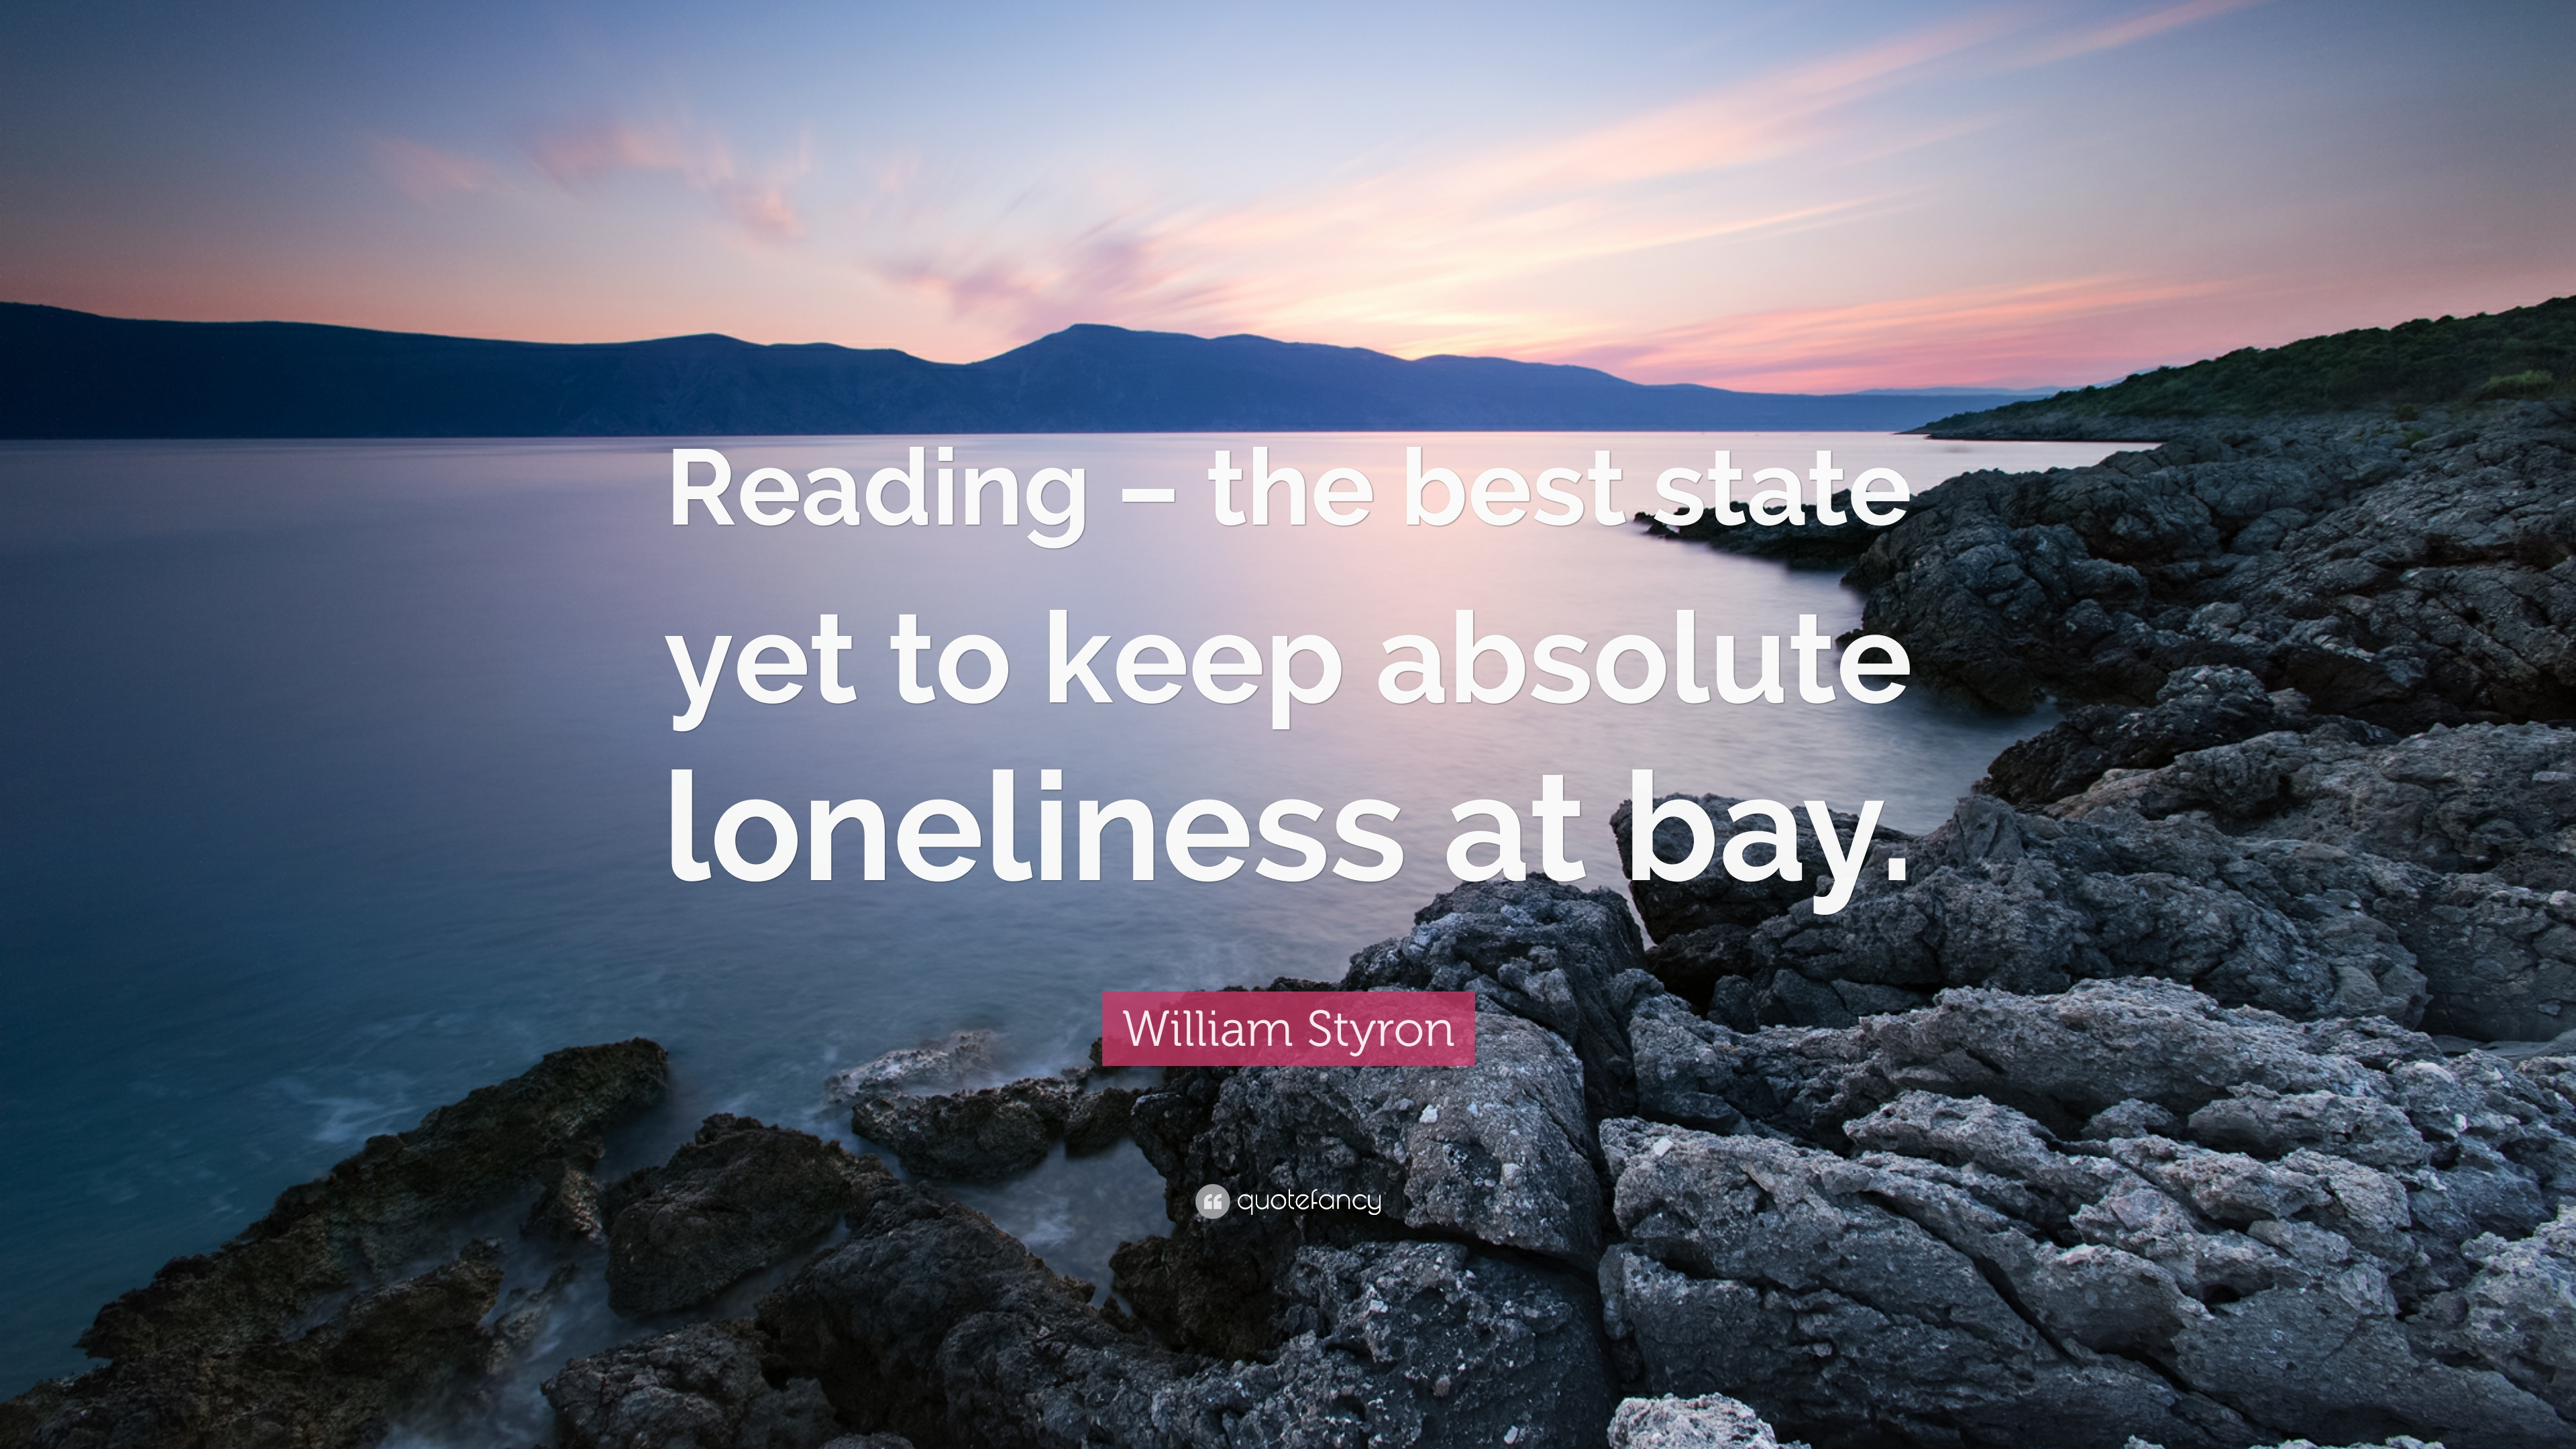 William Styron Quote Reading The Best State Yet To Keep Absolute Loneliness At